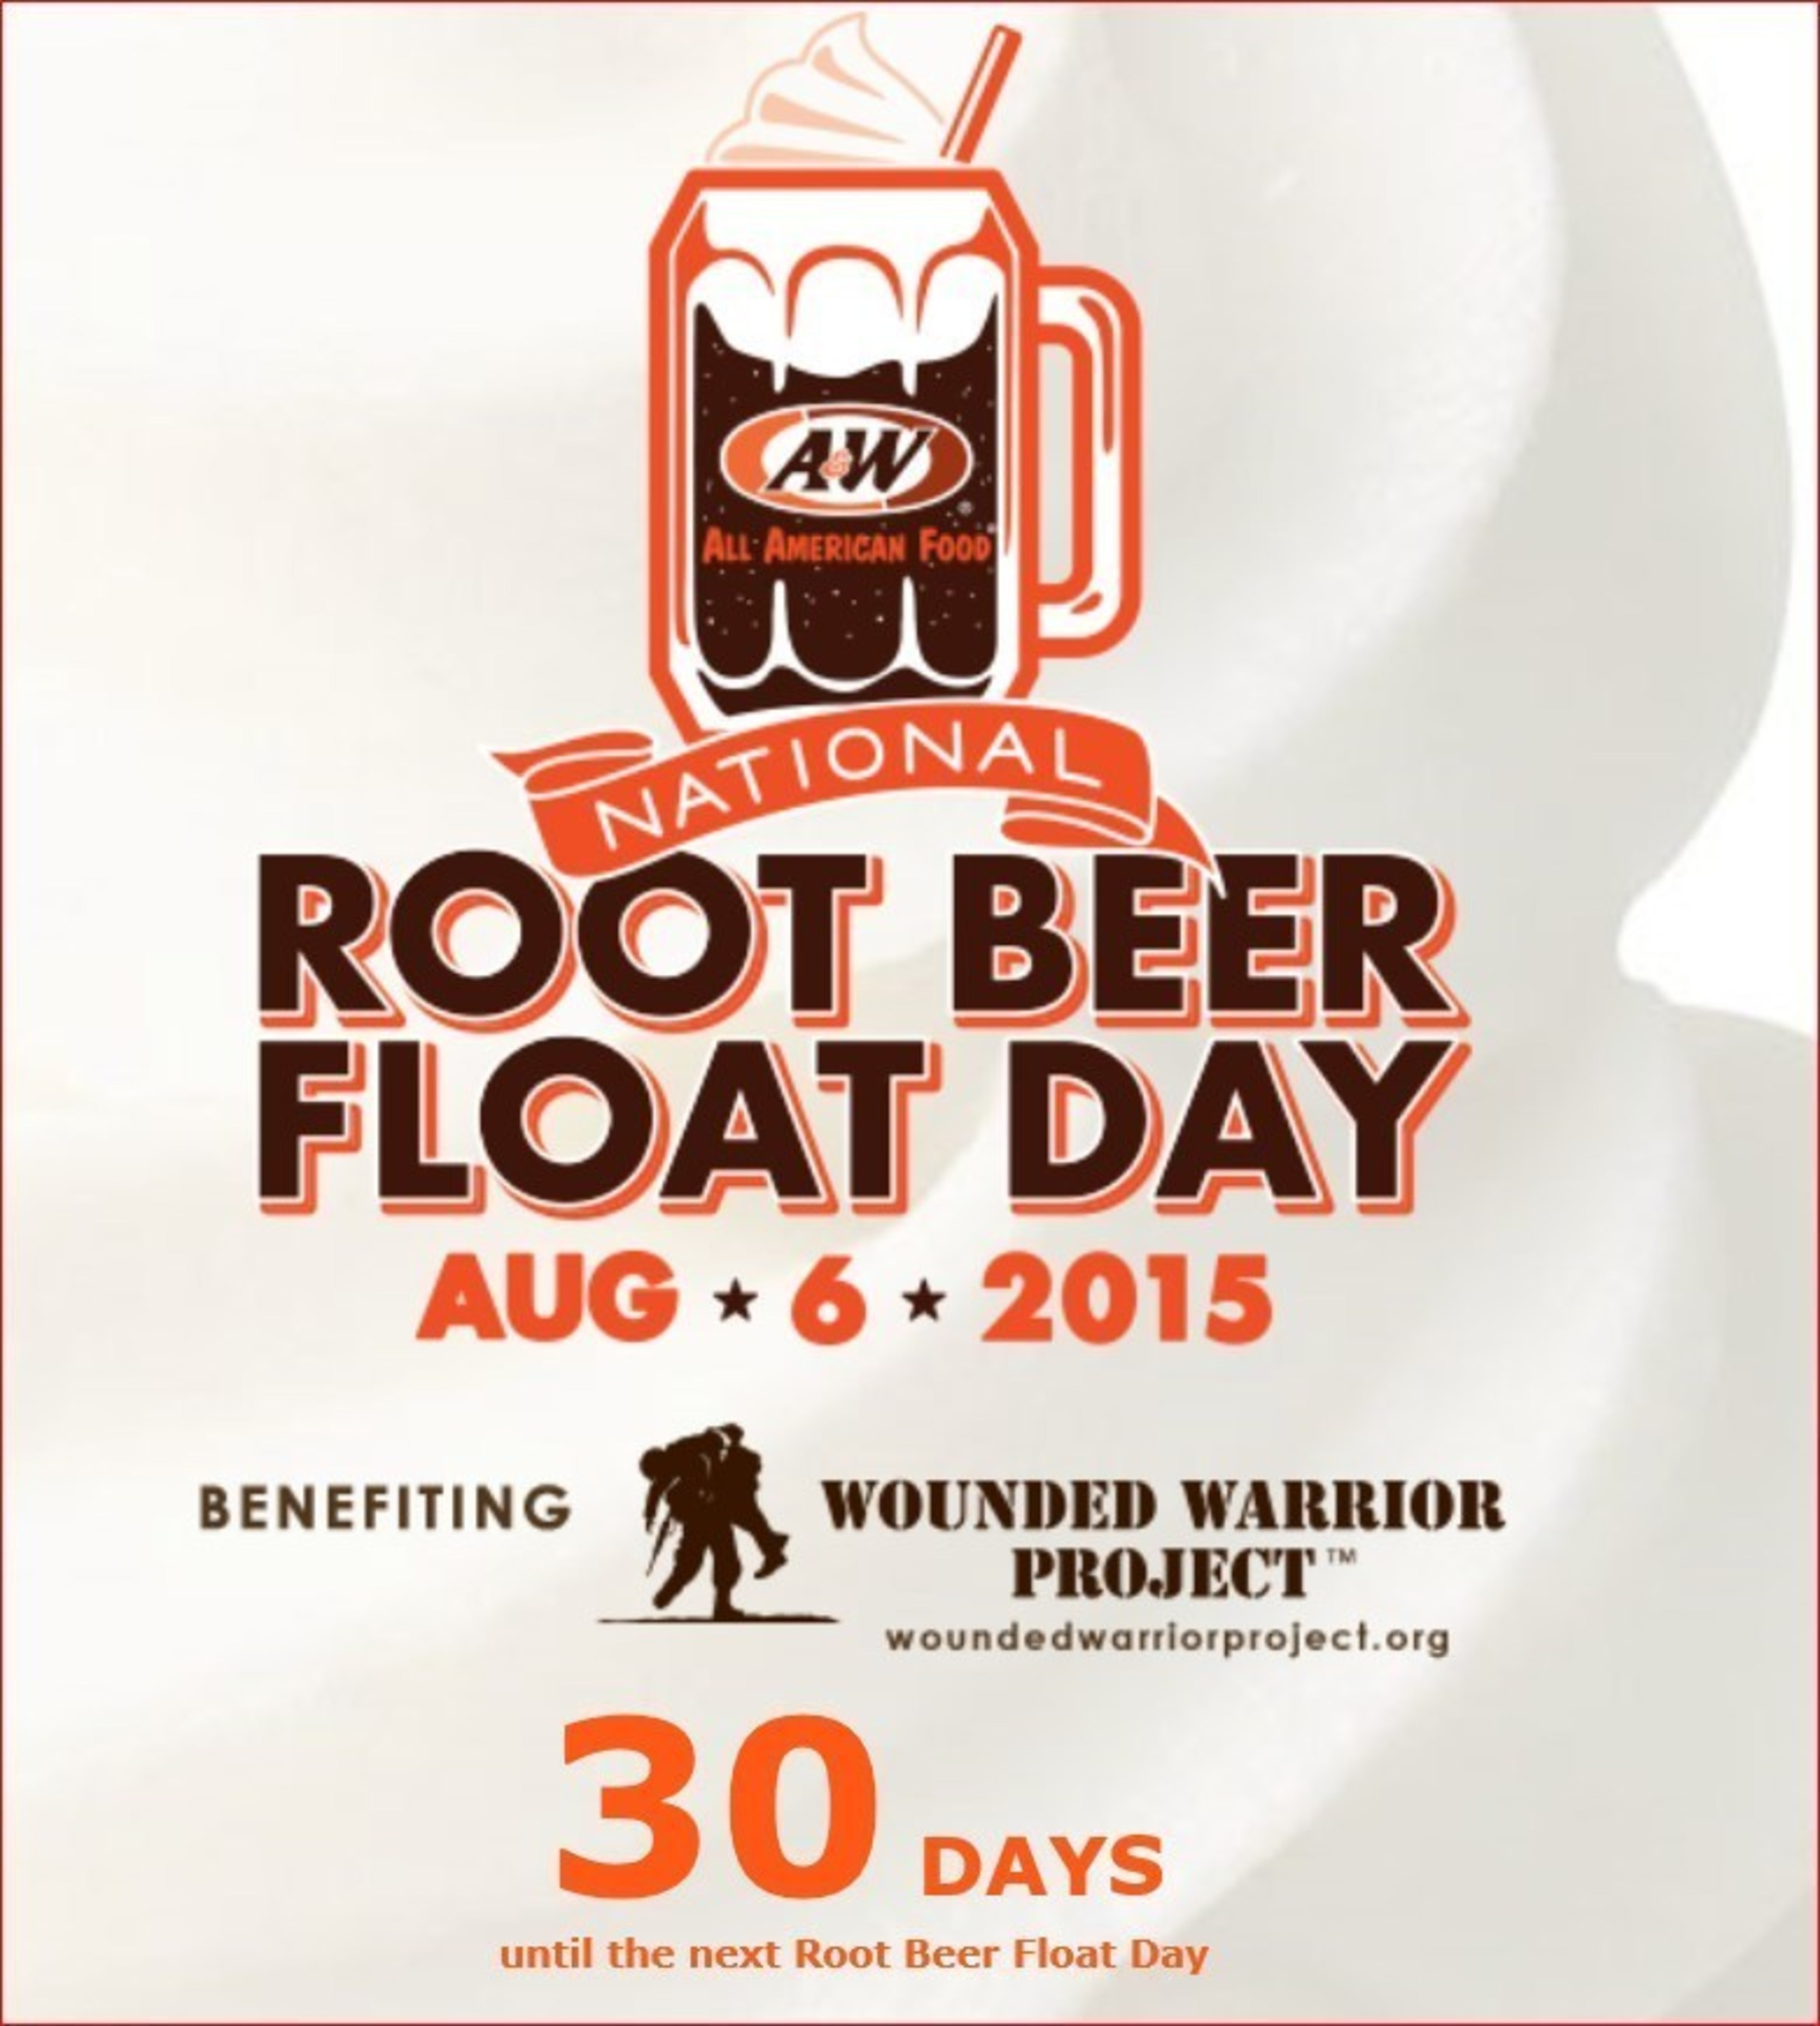 A&W Celebrates National Root Beer Float Day on August 6th with Free Floats after 2PM and a Chance to Donate to the Wounded Warrior Project.